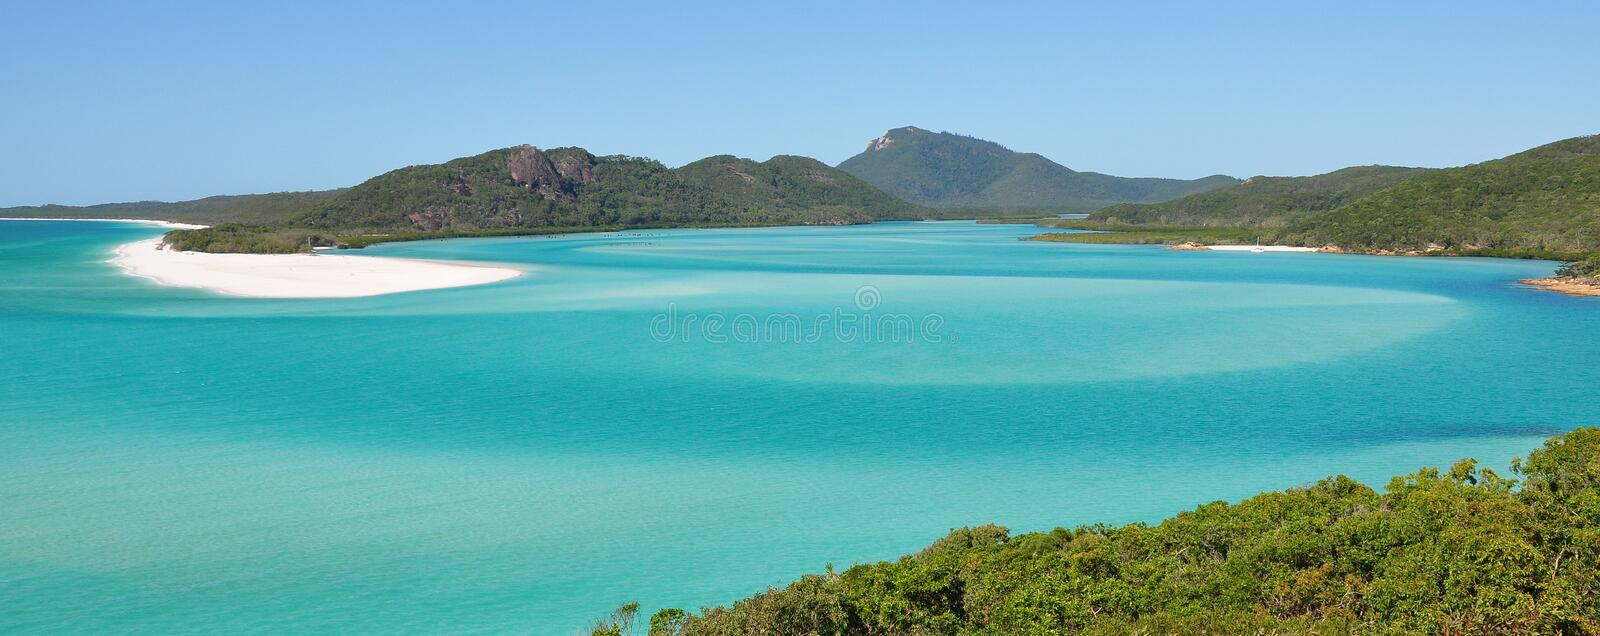 Whitehaven beach on the Great Barrier Reef in Australia royalty free stock photo